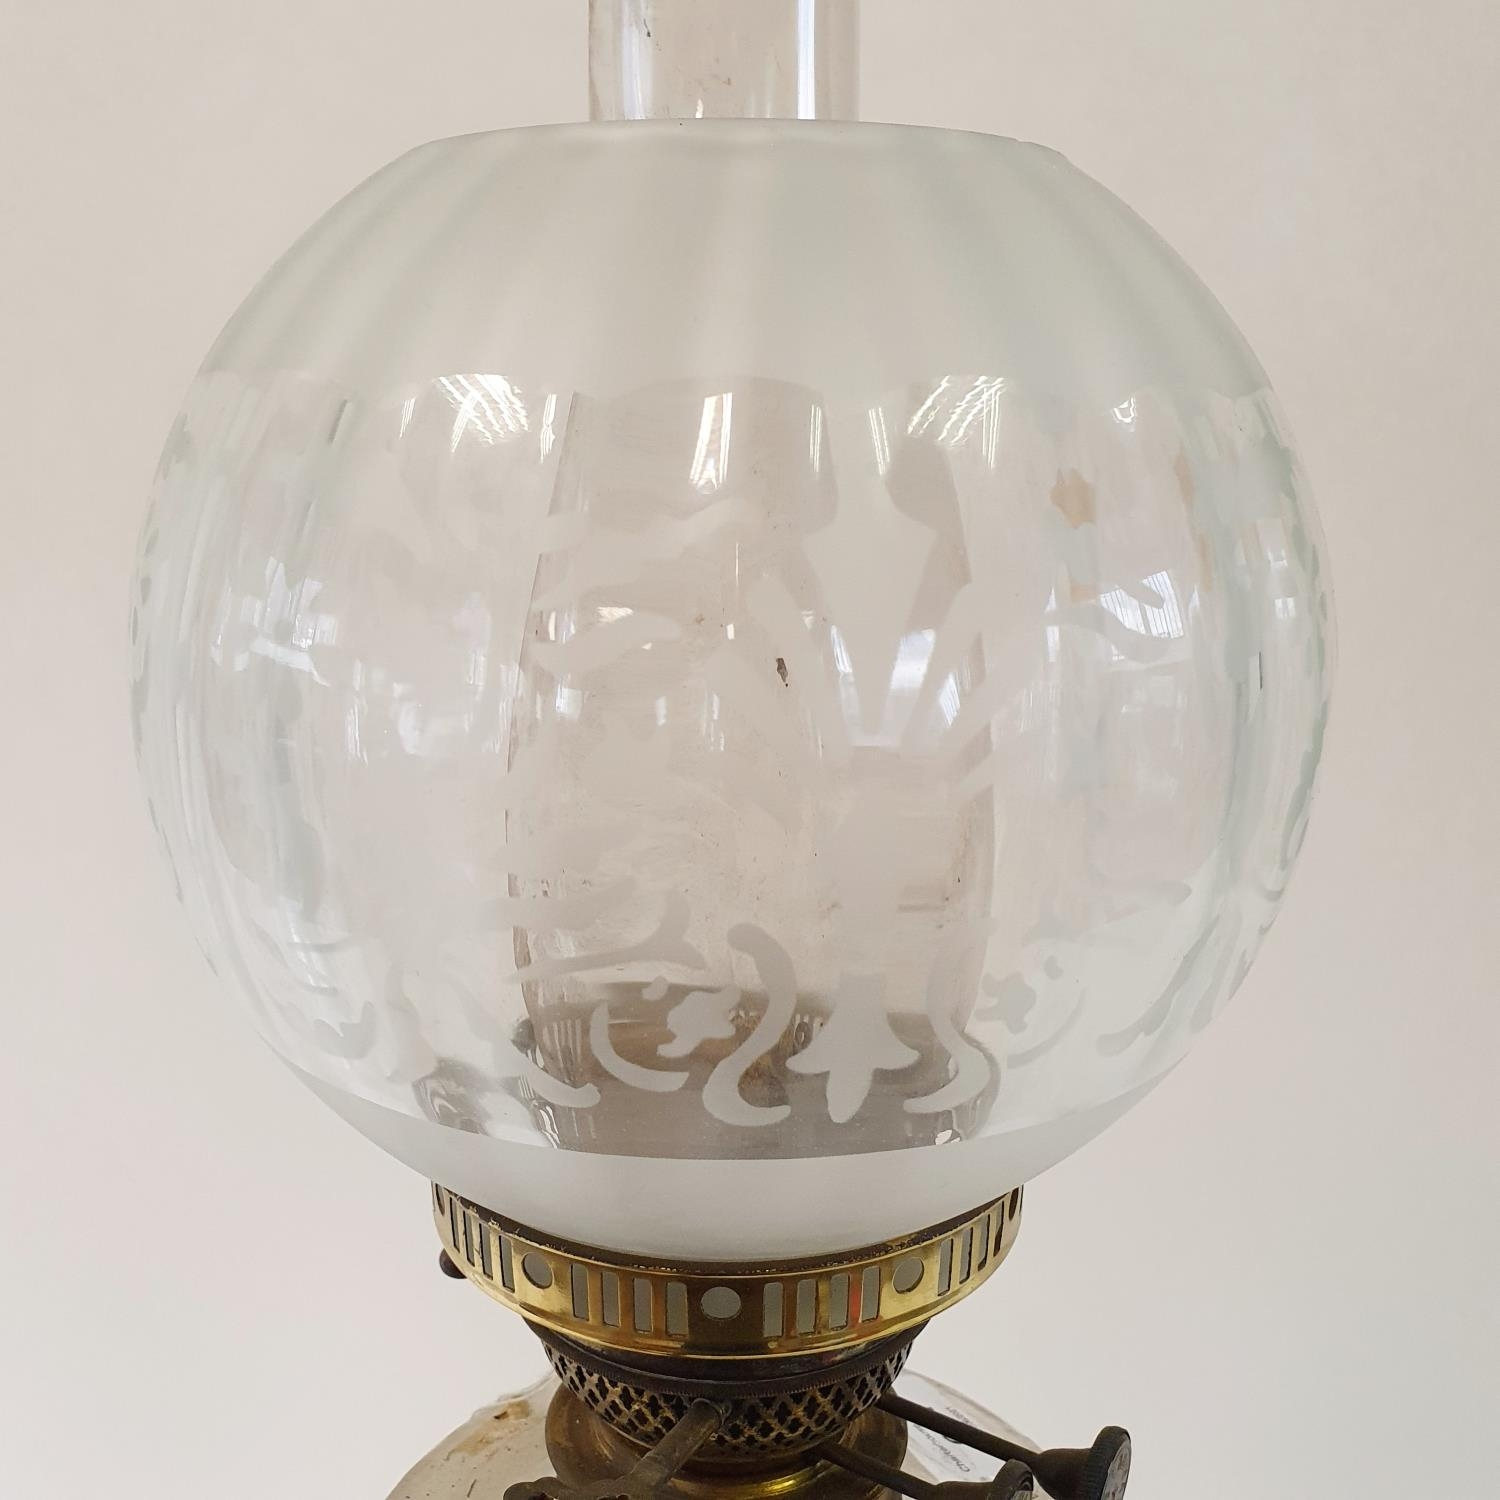 An oil lamp, with an acid etched glass shade, a clear glass well on a brass base in the form of a - Image 4 of 4